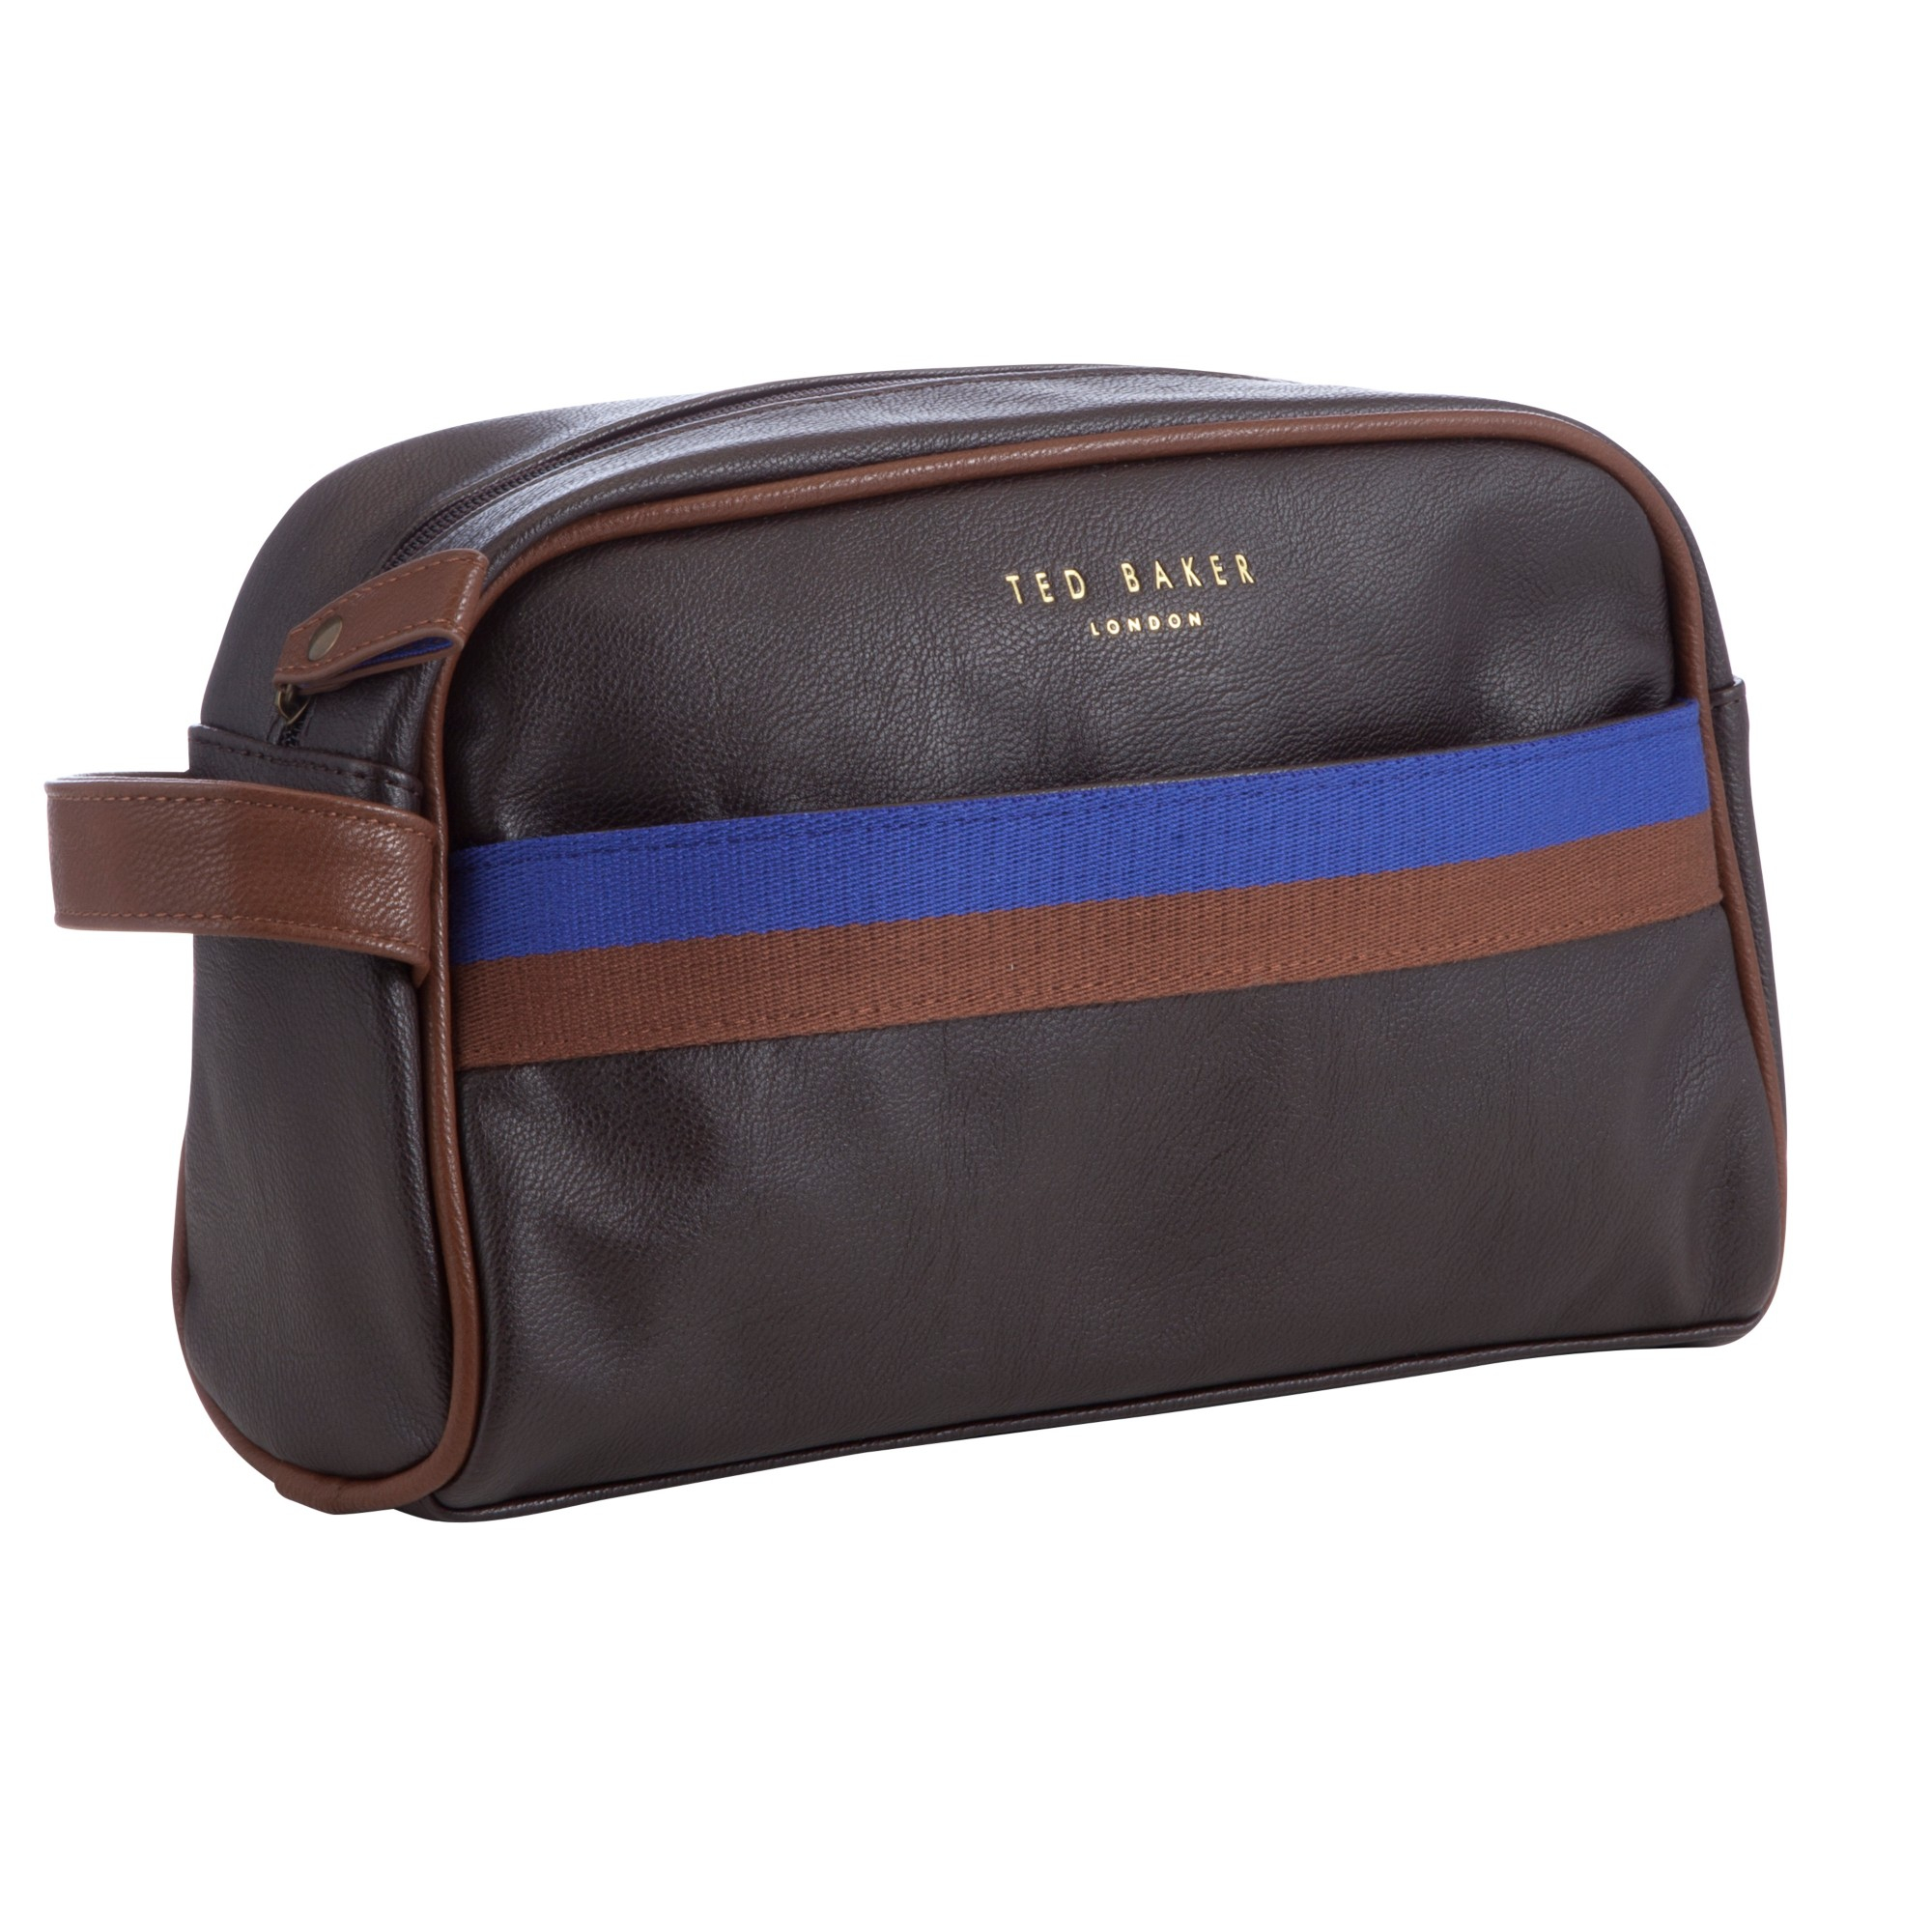 7d69c90e81a1a Ted Baker Cleanit Core Webbing Wash Bag in Brown for Men - Lyst